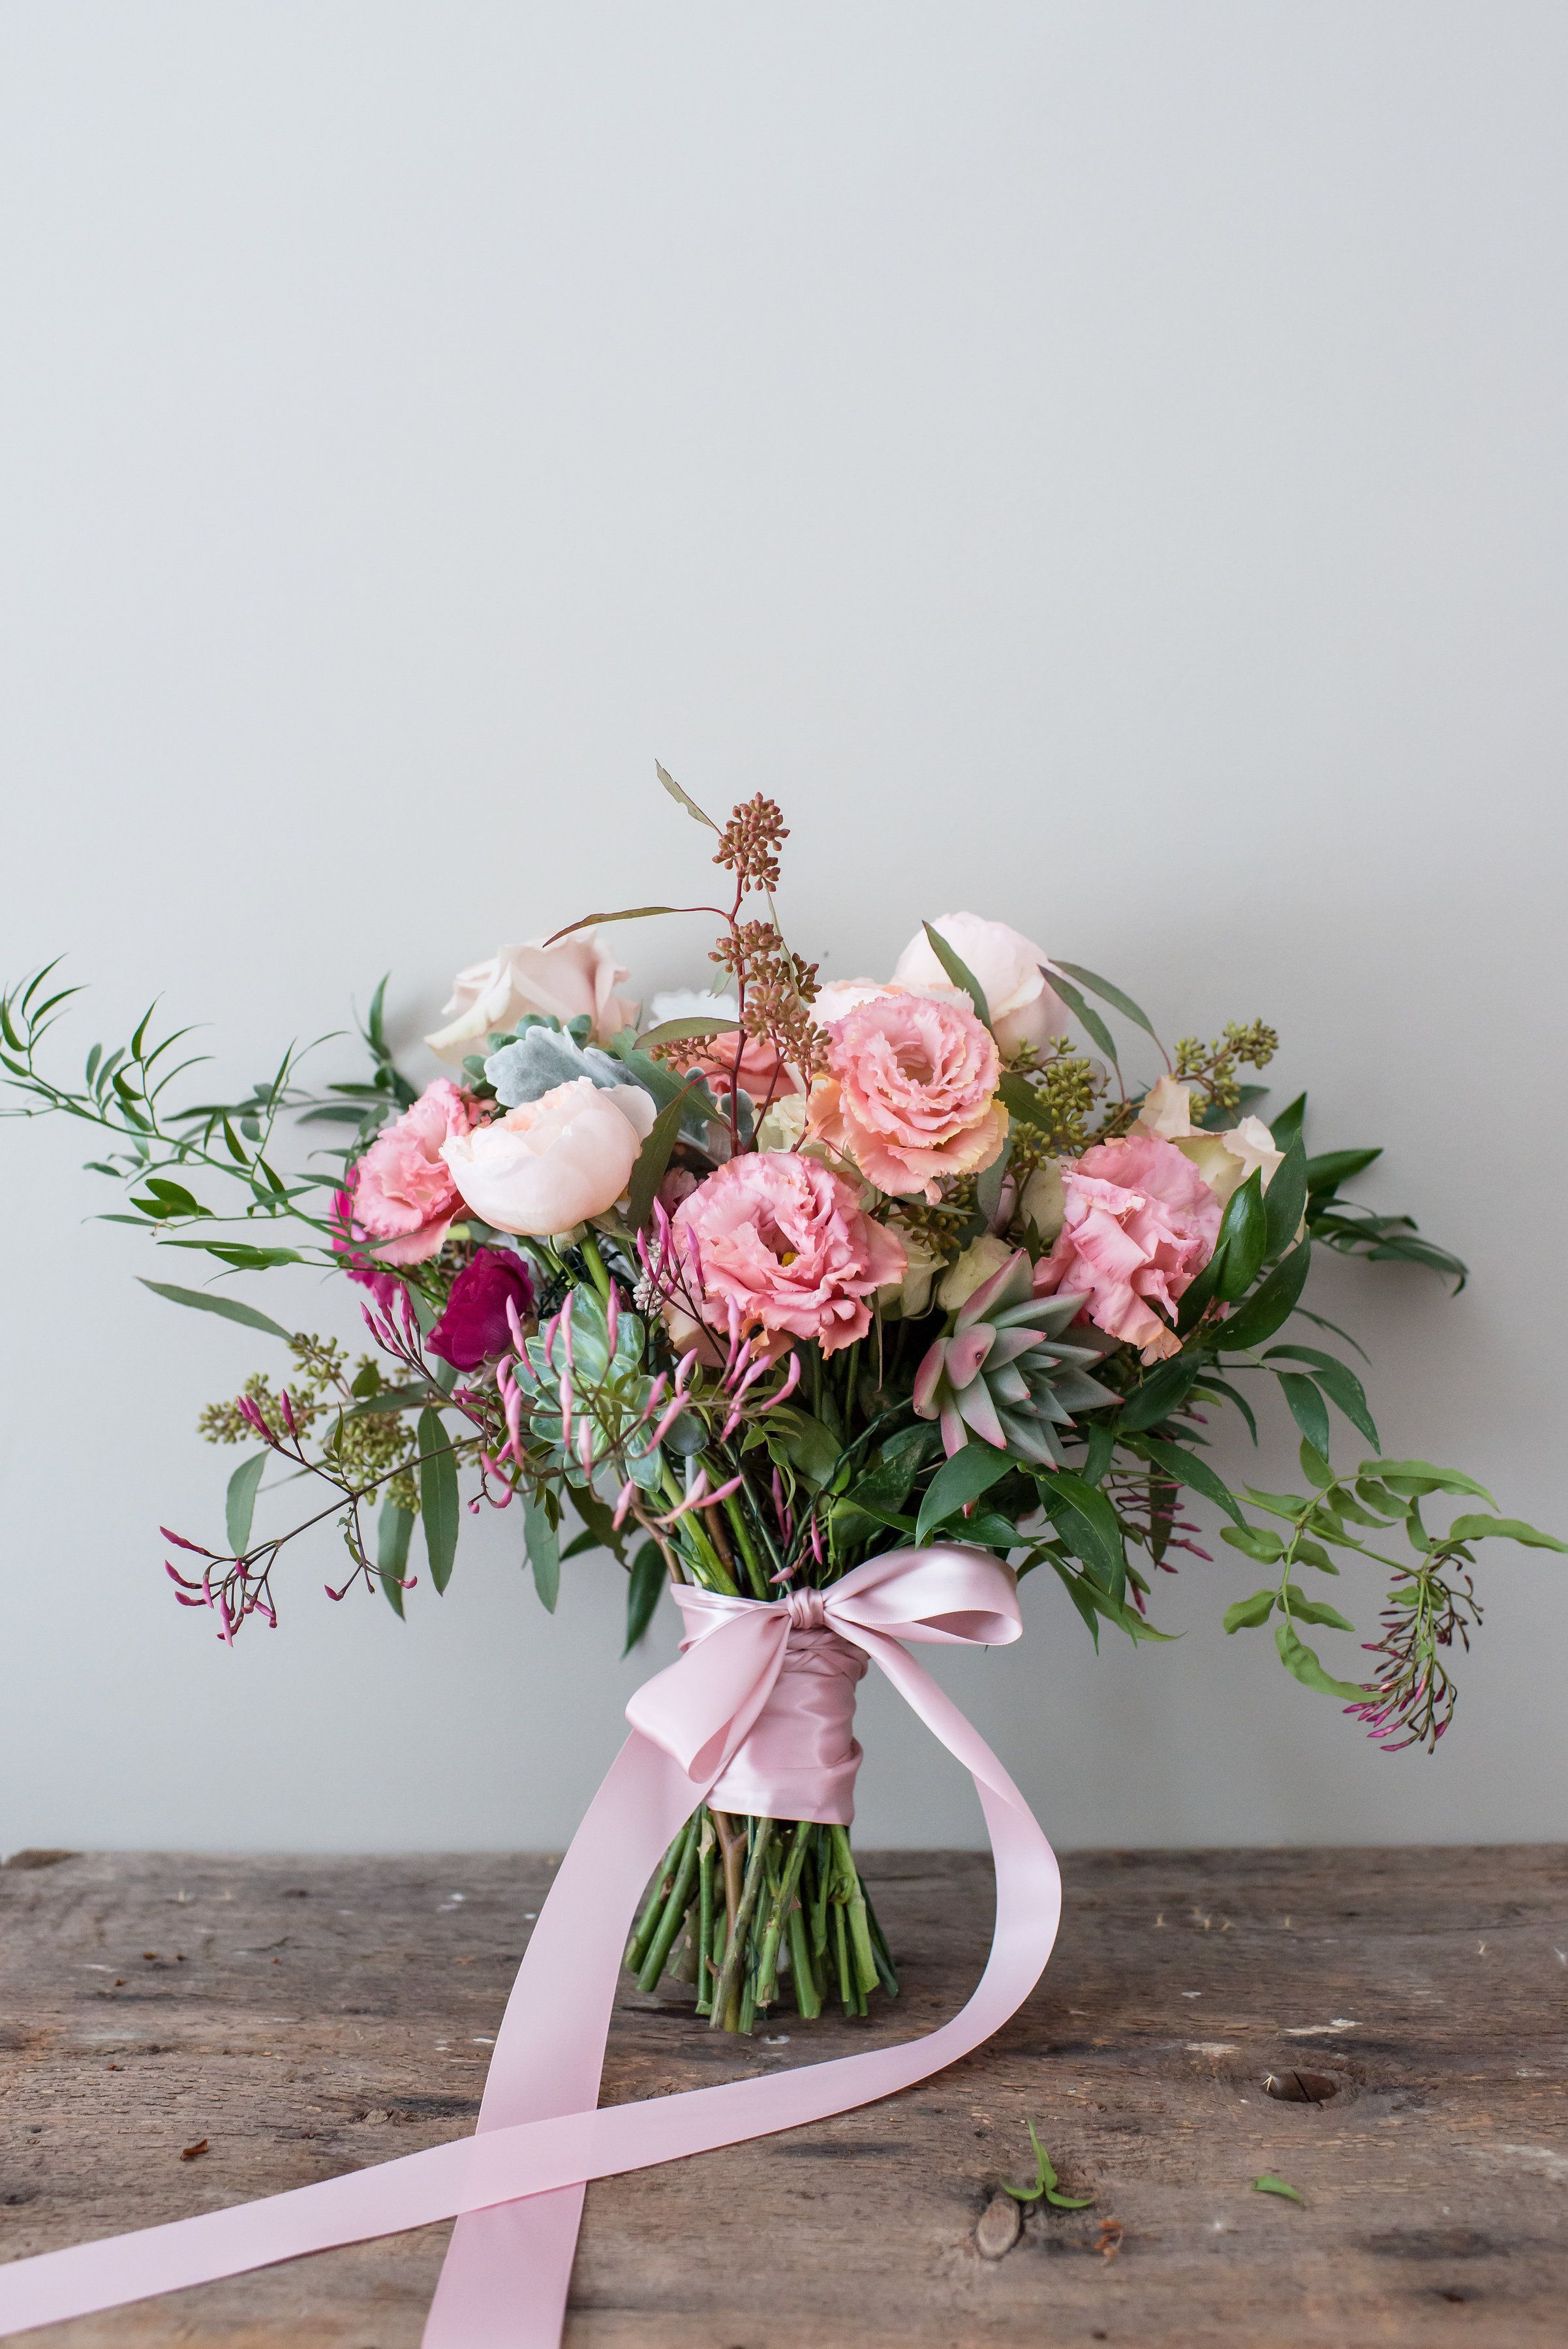 Romantic Garden Style Wedding Bouquet With Blush Peach And Pink Tones Garden Roses Ranu Wedding Bouquets Pink Pink Rose Wedding Bouquet Rose Wedding Bouquet